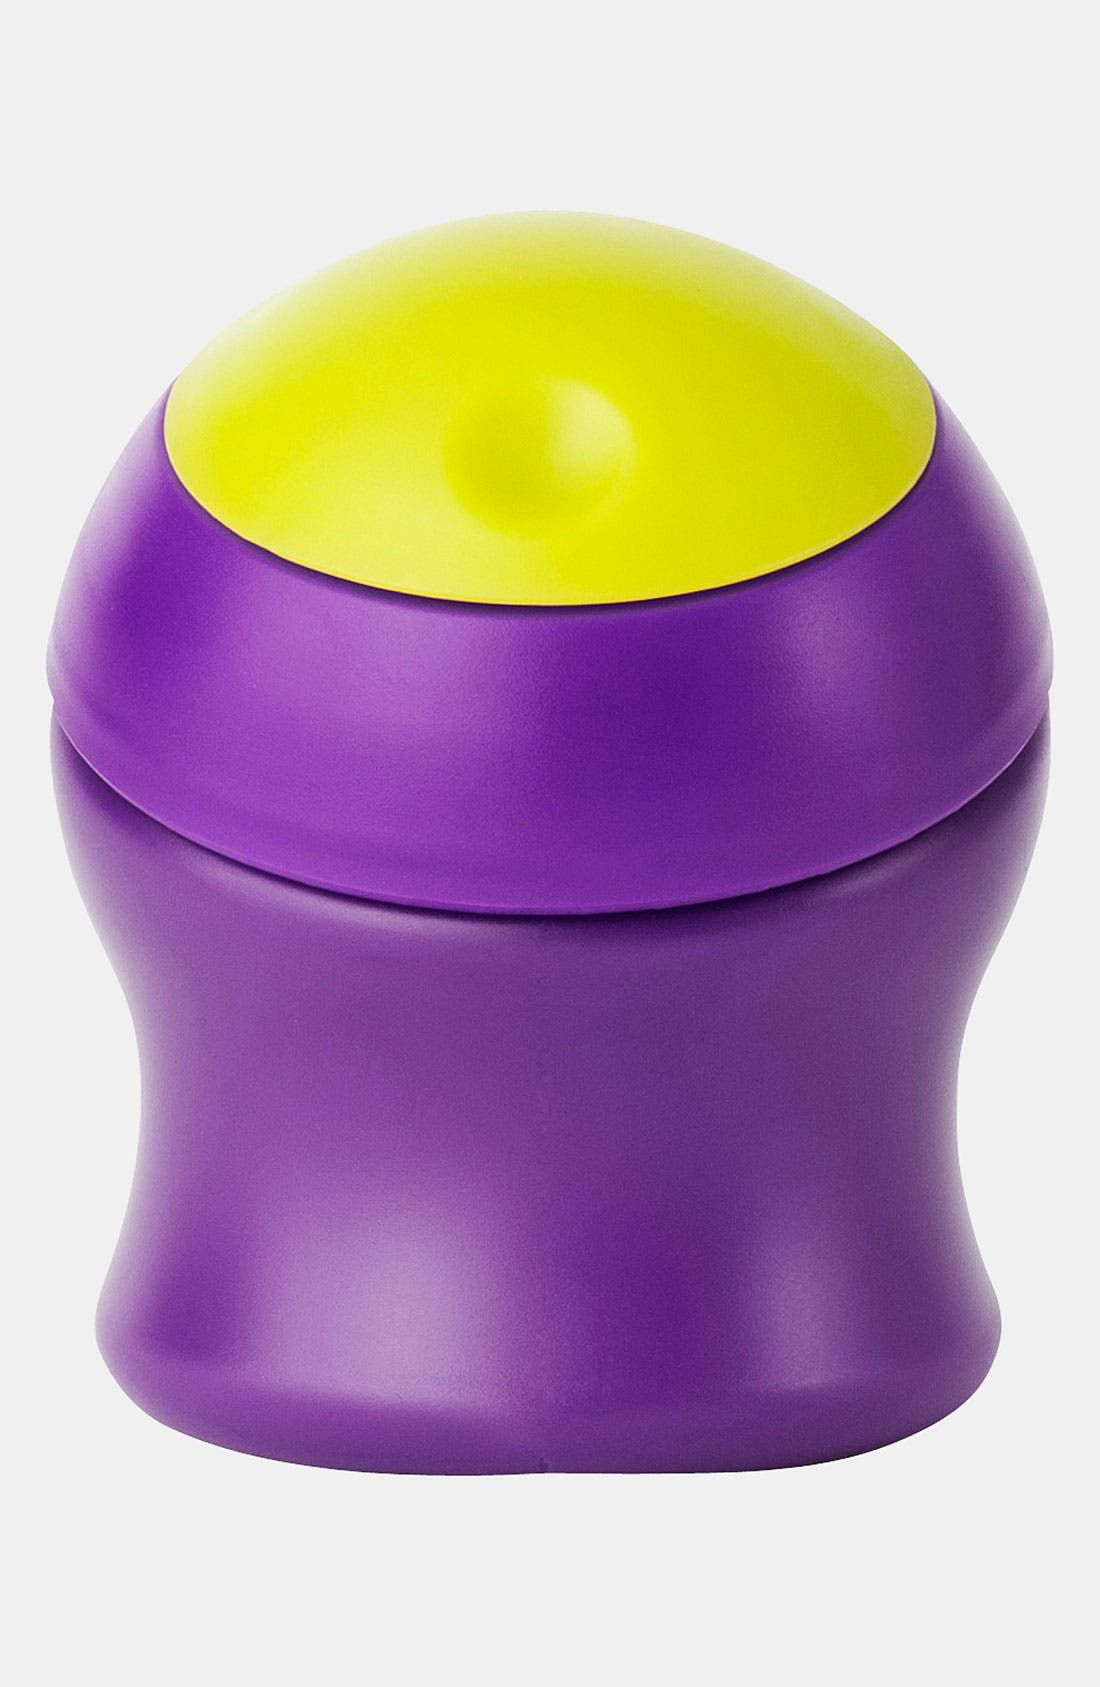 Main Image - Boon 'Munch' Snack Container